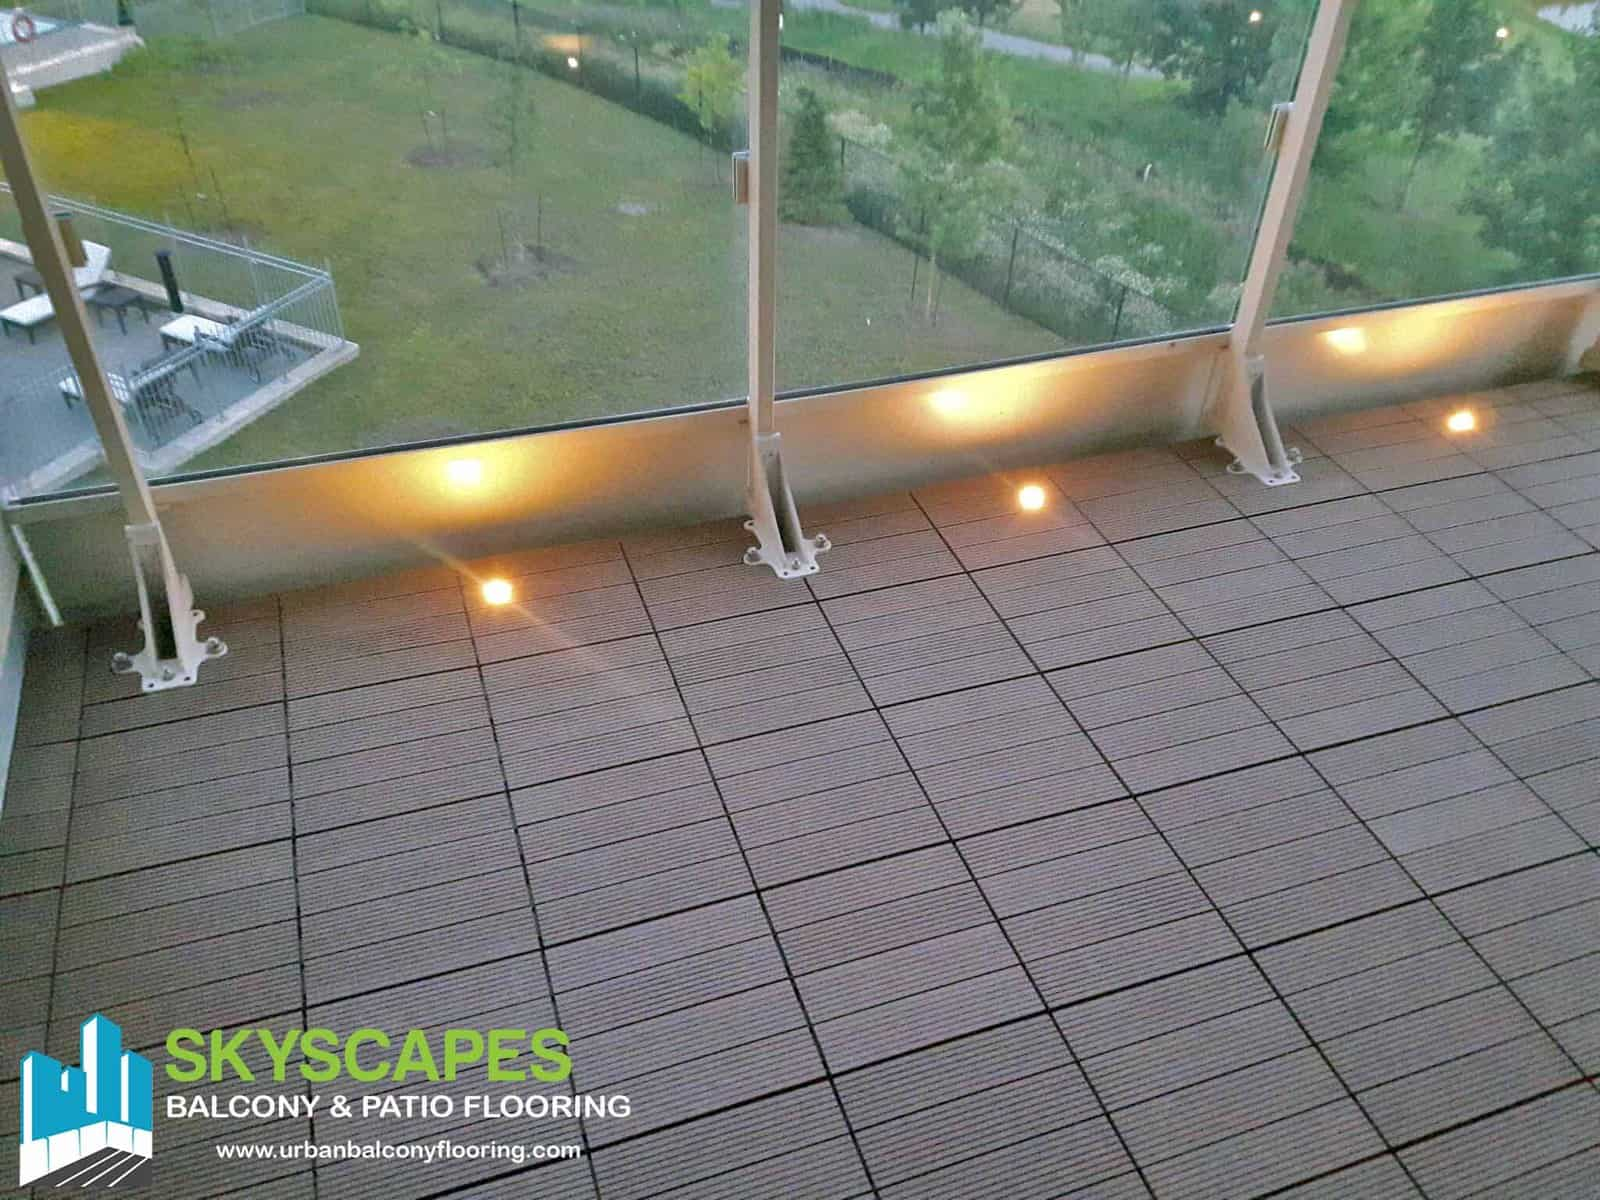 Skyscapes Outdoor Flooring Deck Tiles For Balcony Or Terrace